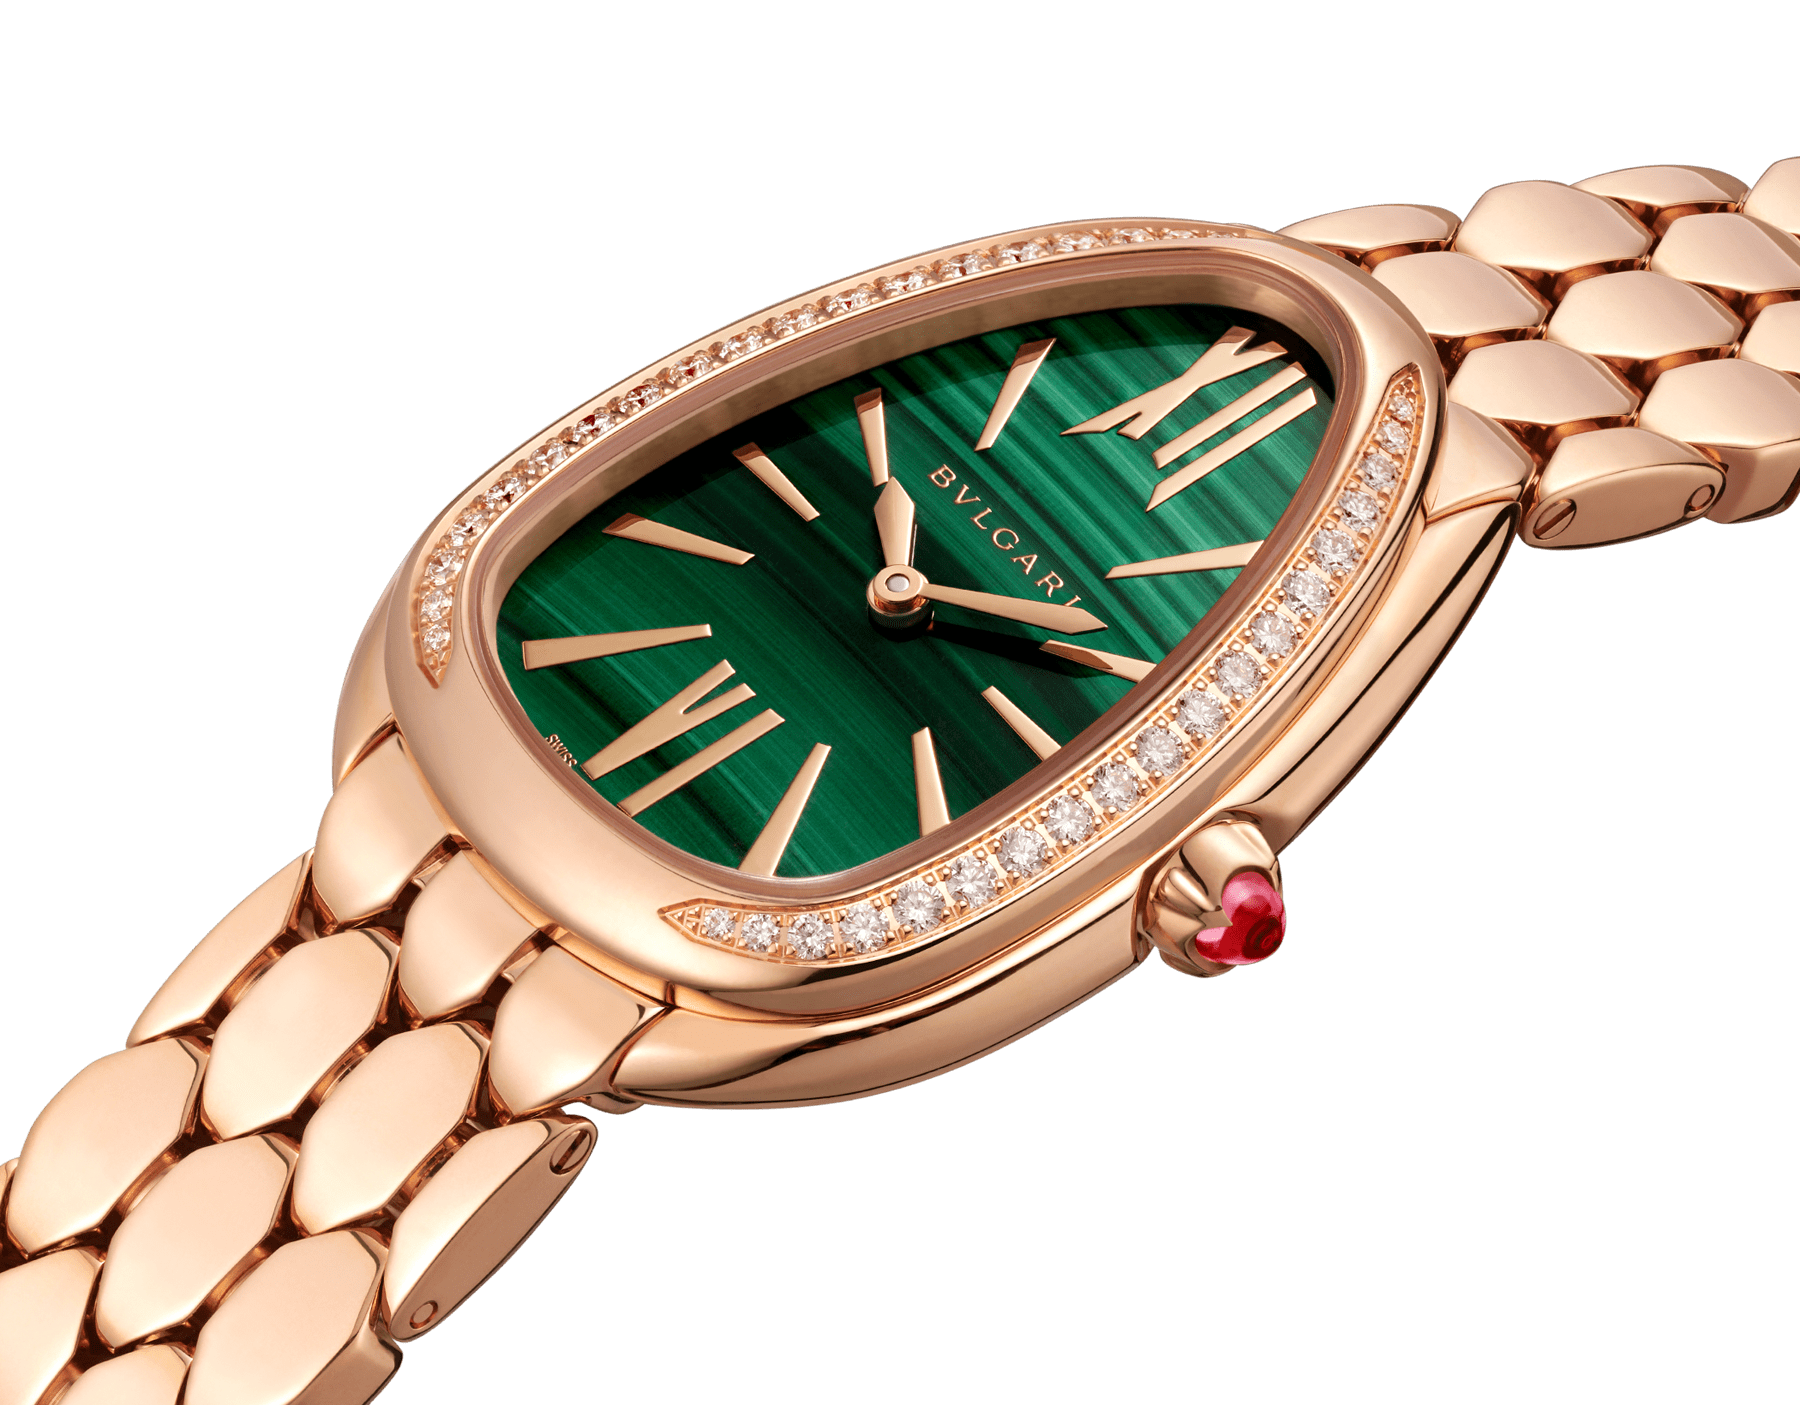 Serpenti Seduttori watch with 18 kt rose gold case and bracelet, 18 kt rose gold bezel set with diamonds and malachite dial 103273 image 2